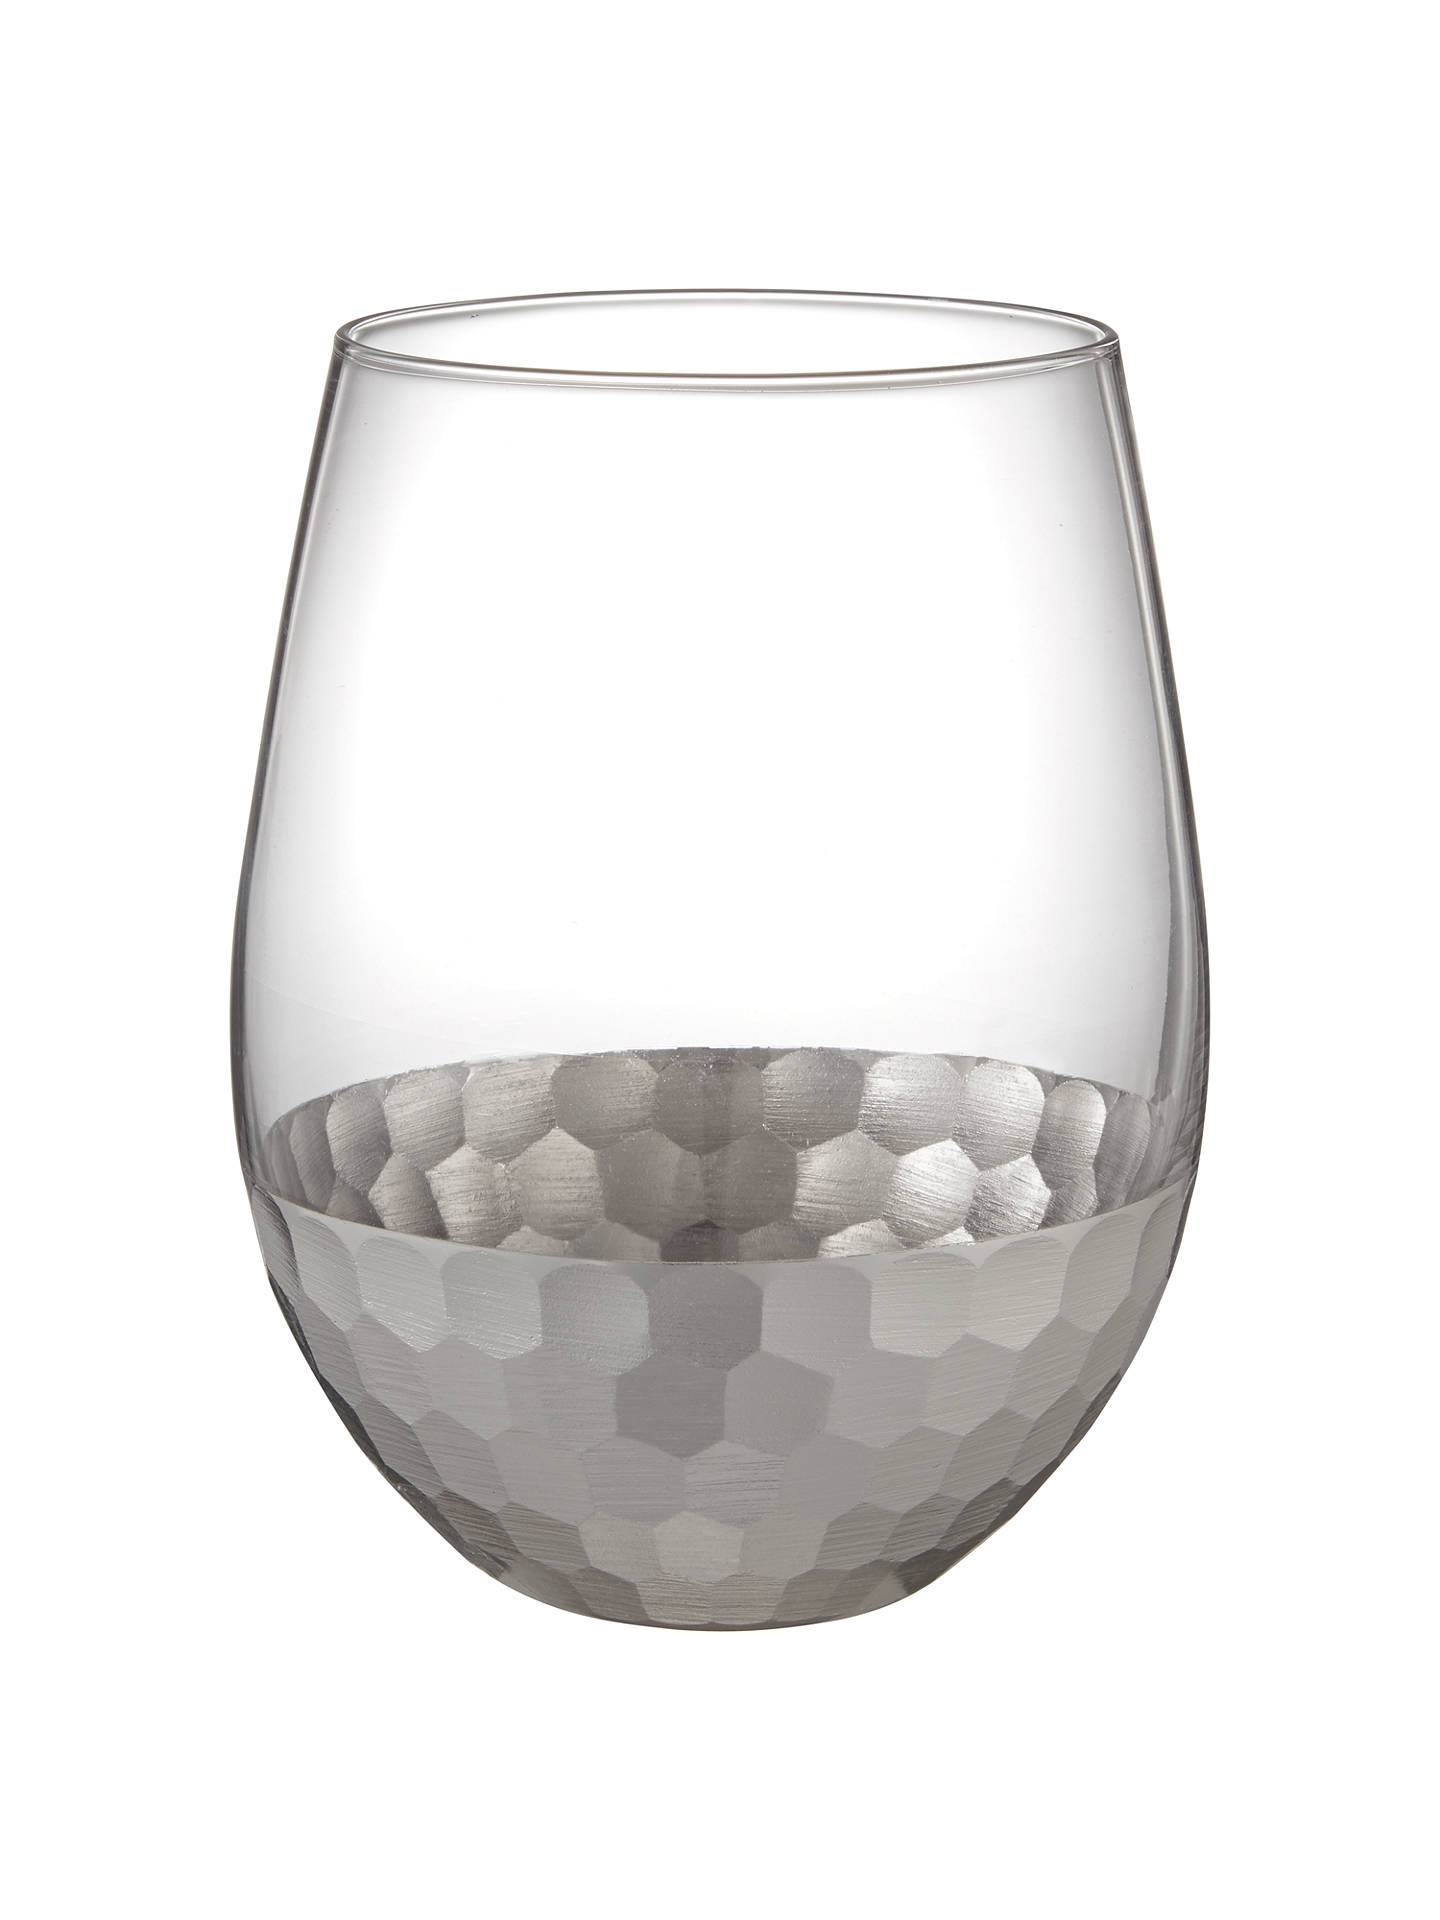 john-lewis-&-partners-gleam-hammered-glass-tumbler,-500ml,-silver_clear by john-lewis-&-partners